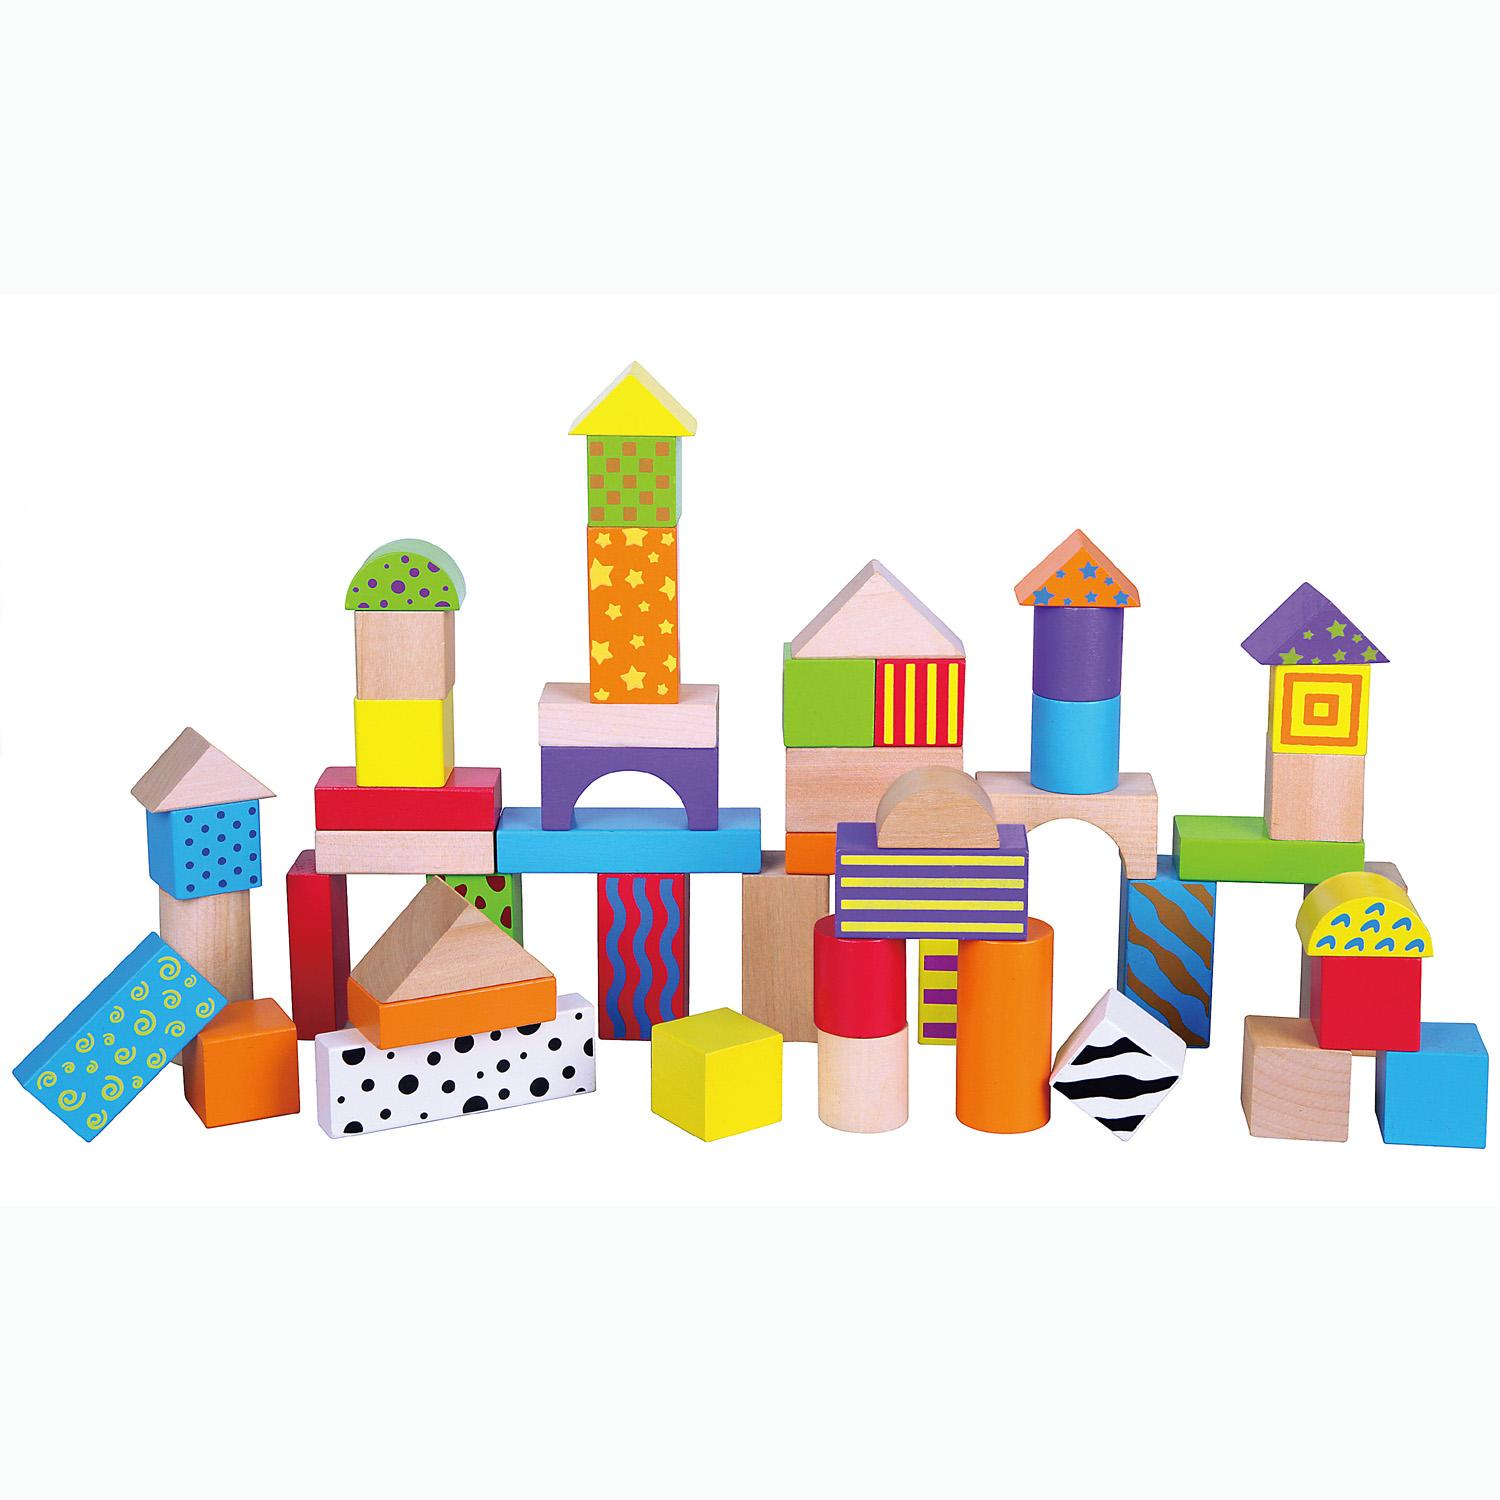 Wooden Blocks For Toddlers ~ Childrens wooden building stacking blocks bricks toy